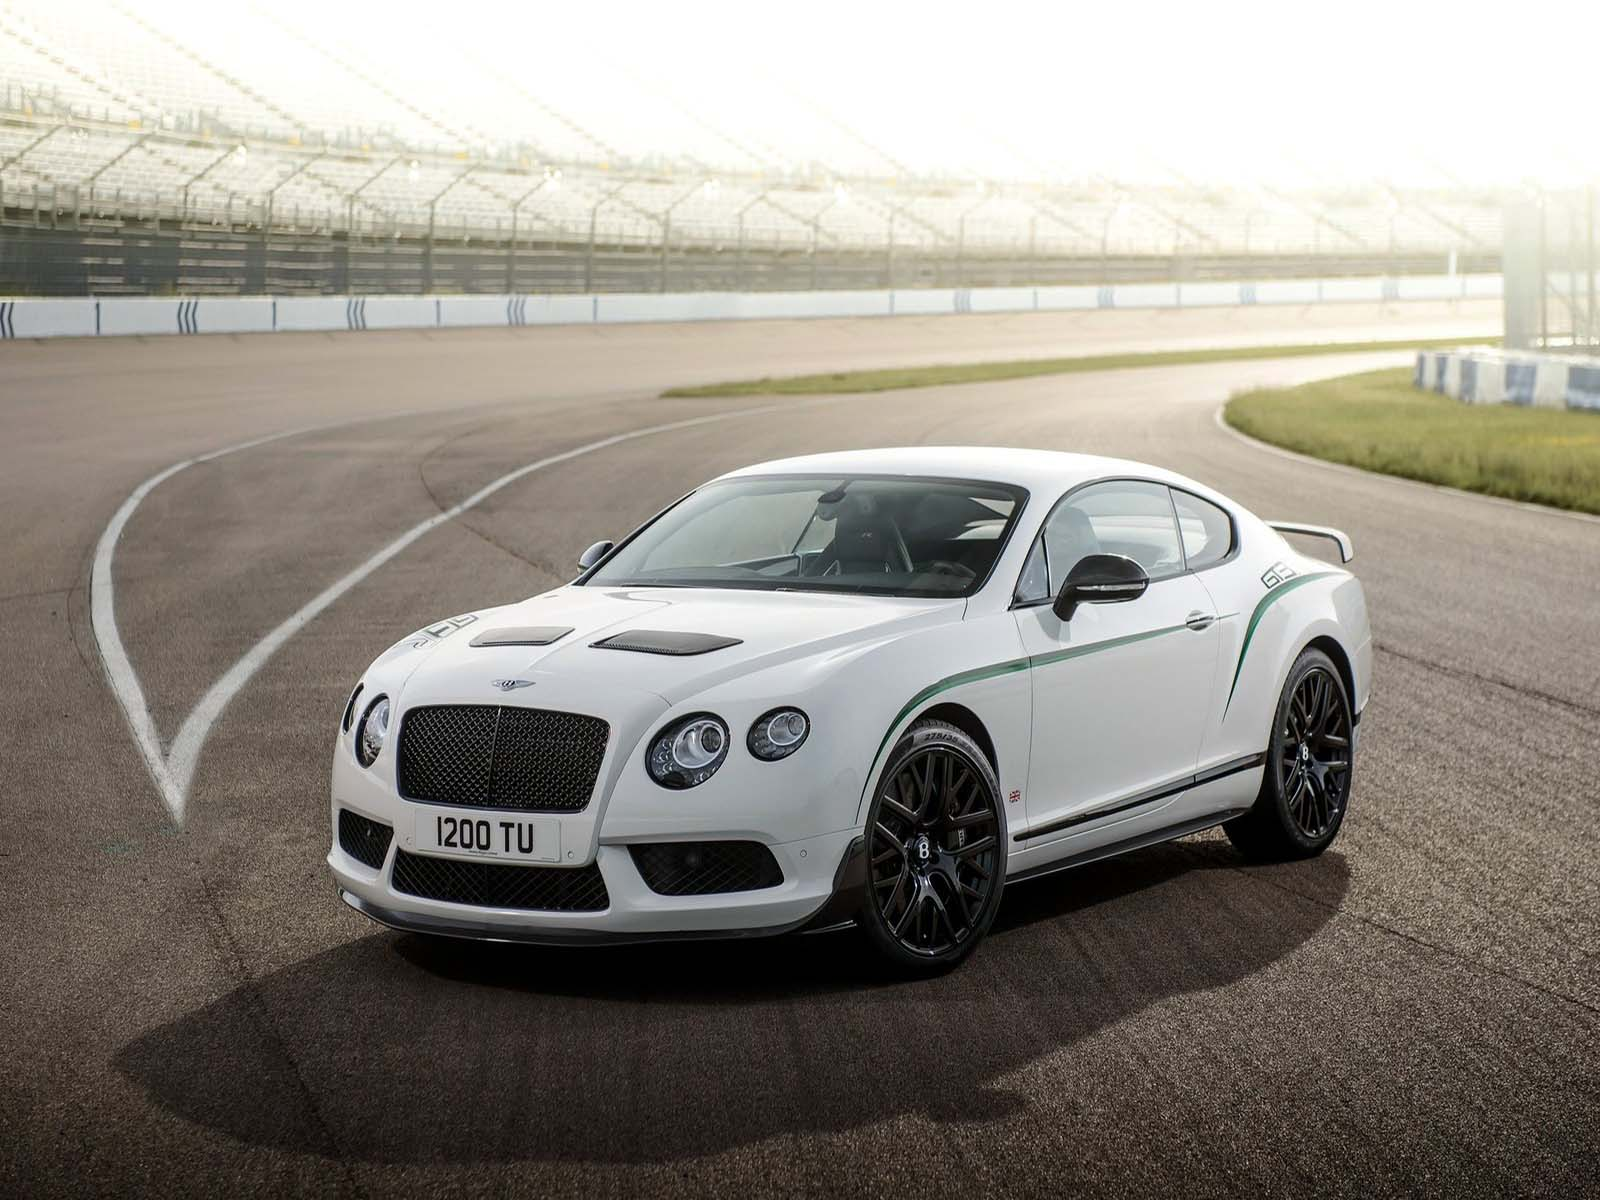 Bentley-Continental-GT-Free-Car-wallpaper-wp4236-1